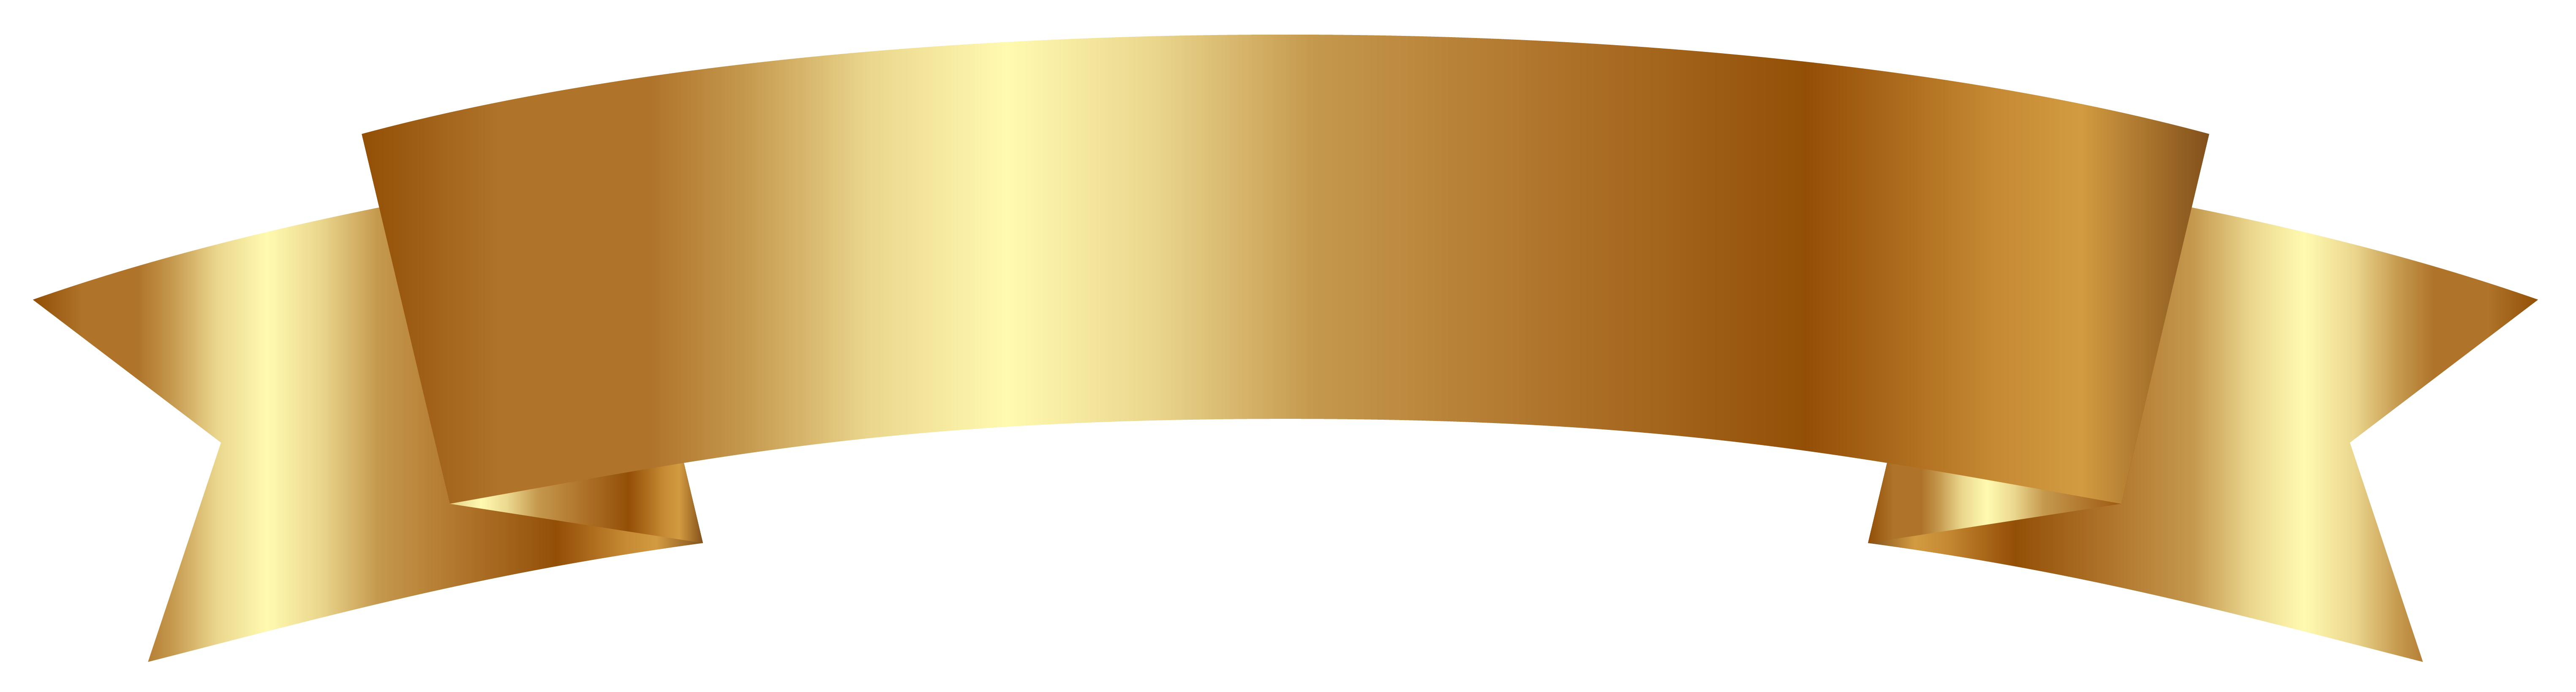 Gold ribbon banner png. Clipart image gallery yopriceville